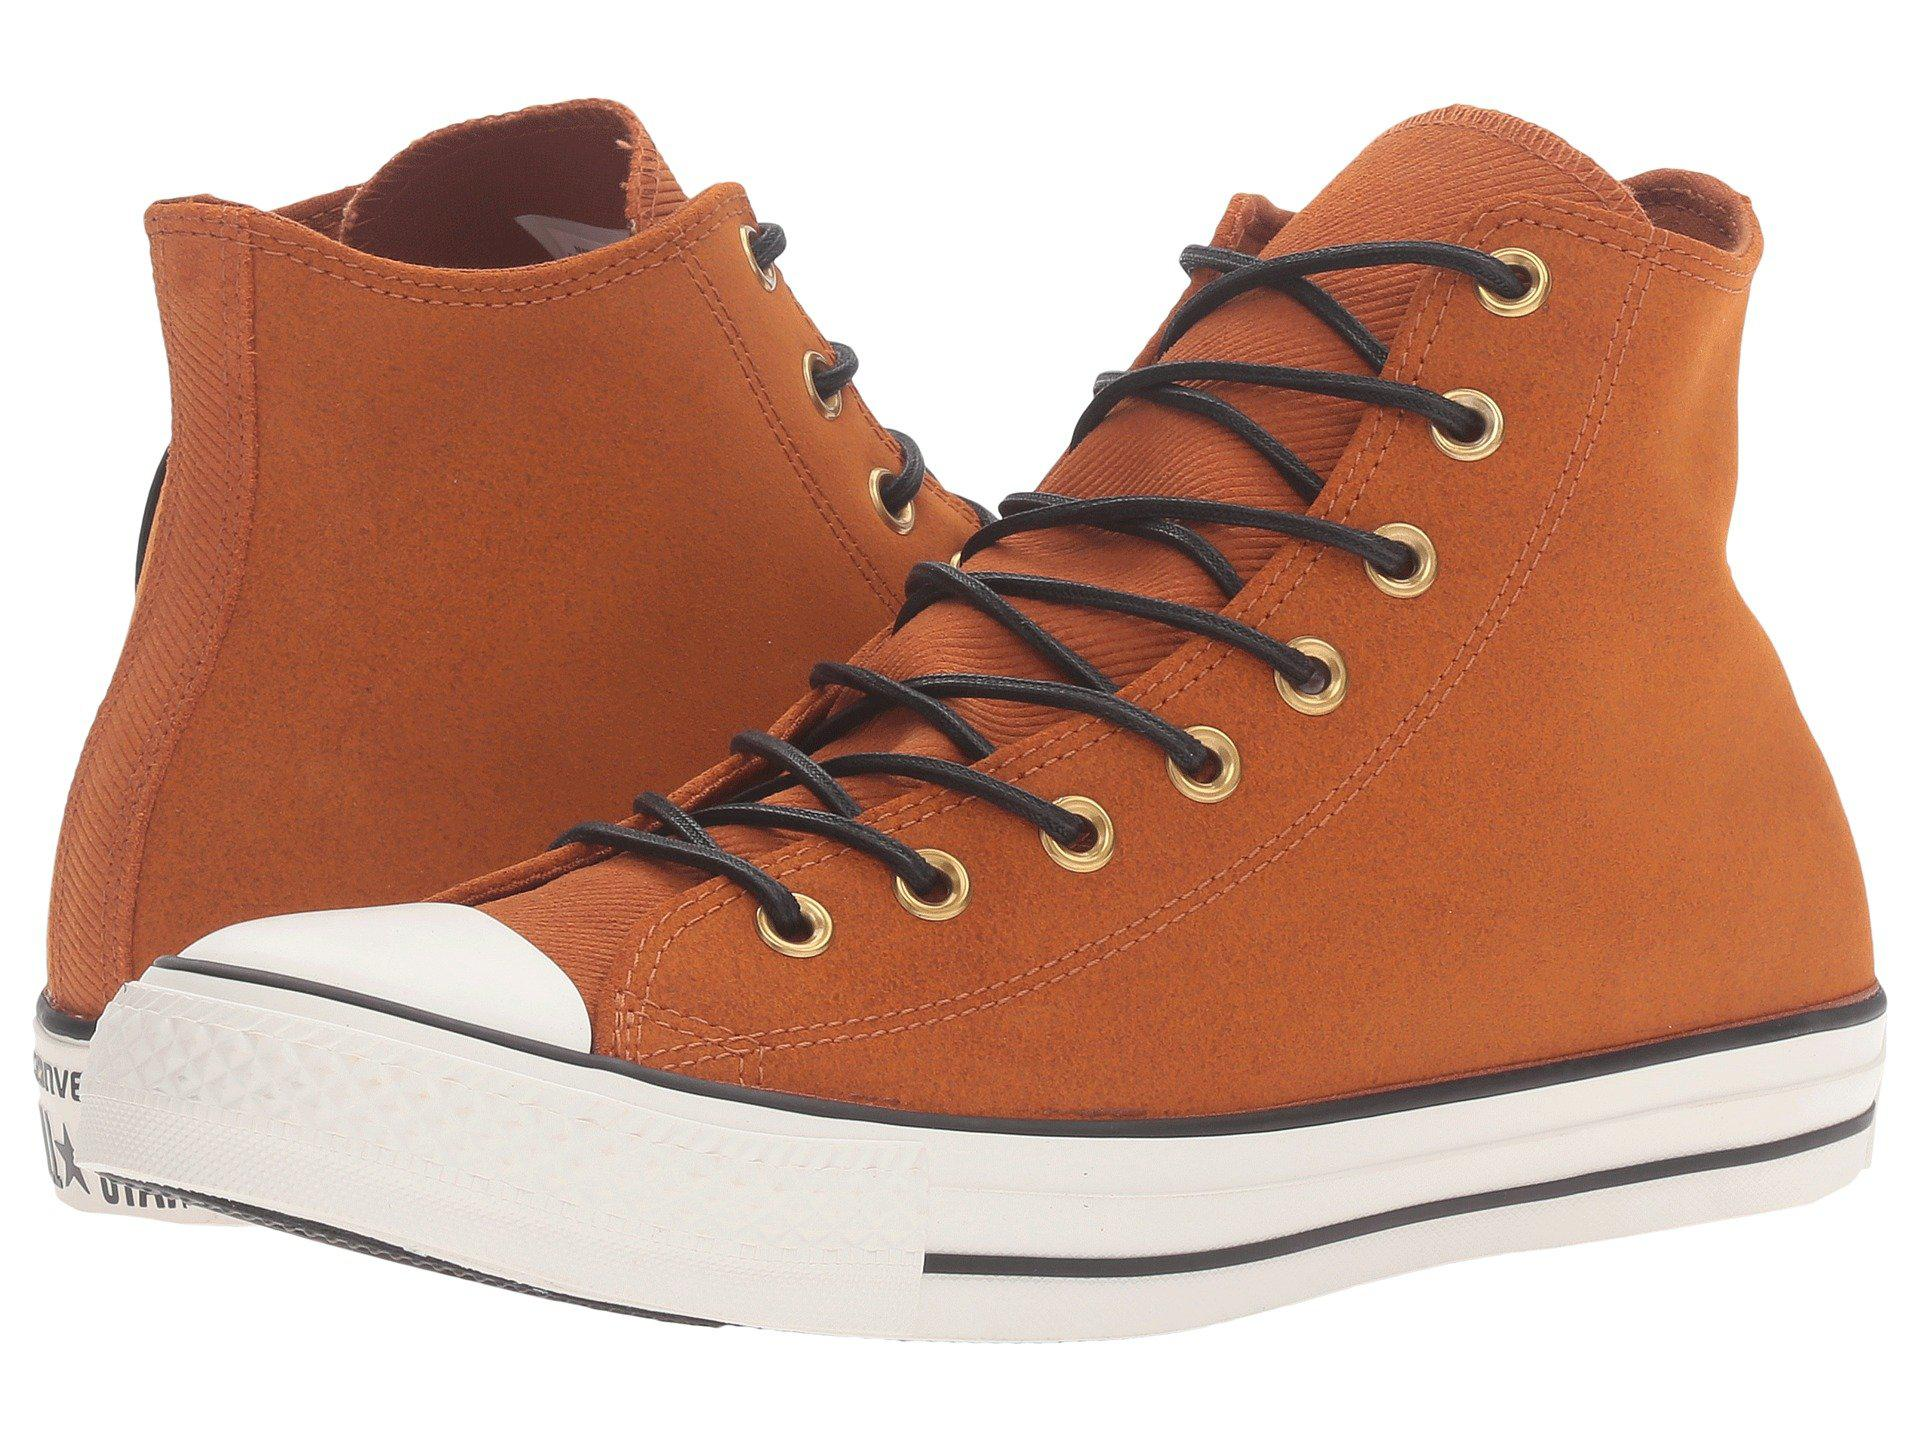 921e8463f7d675 Lyst - Converse Chuck Taylor® All Star® Leather corduroy Hi for Men